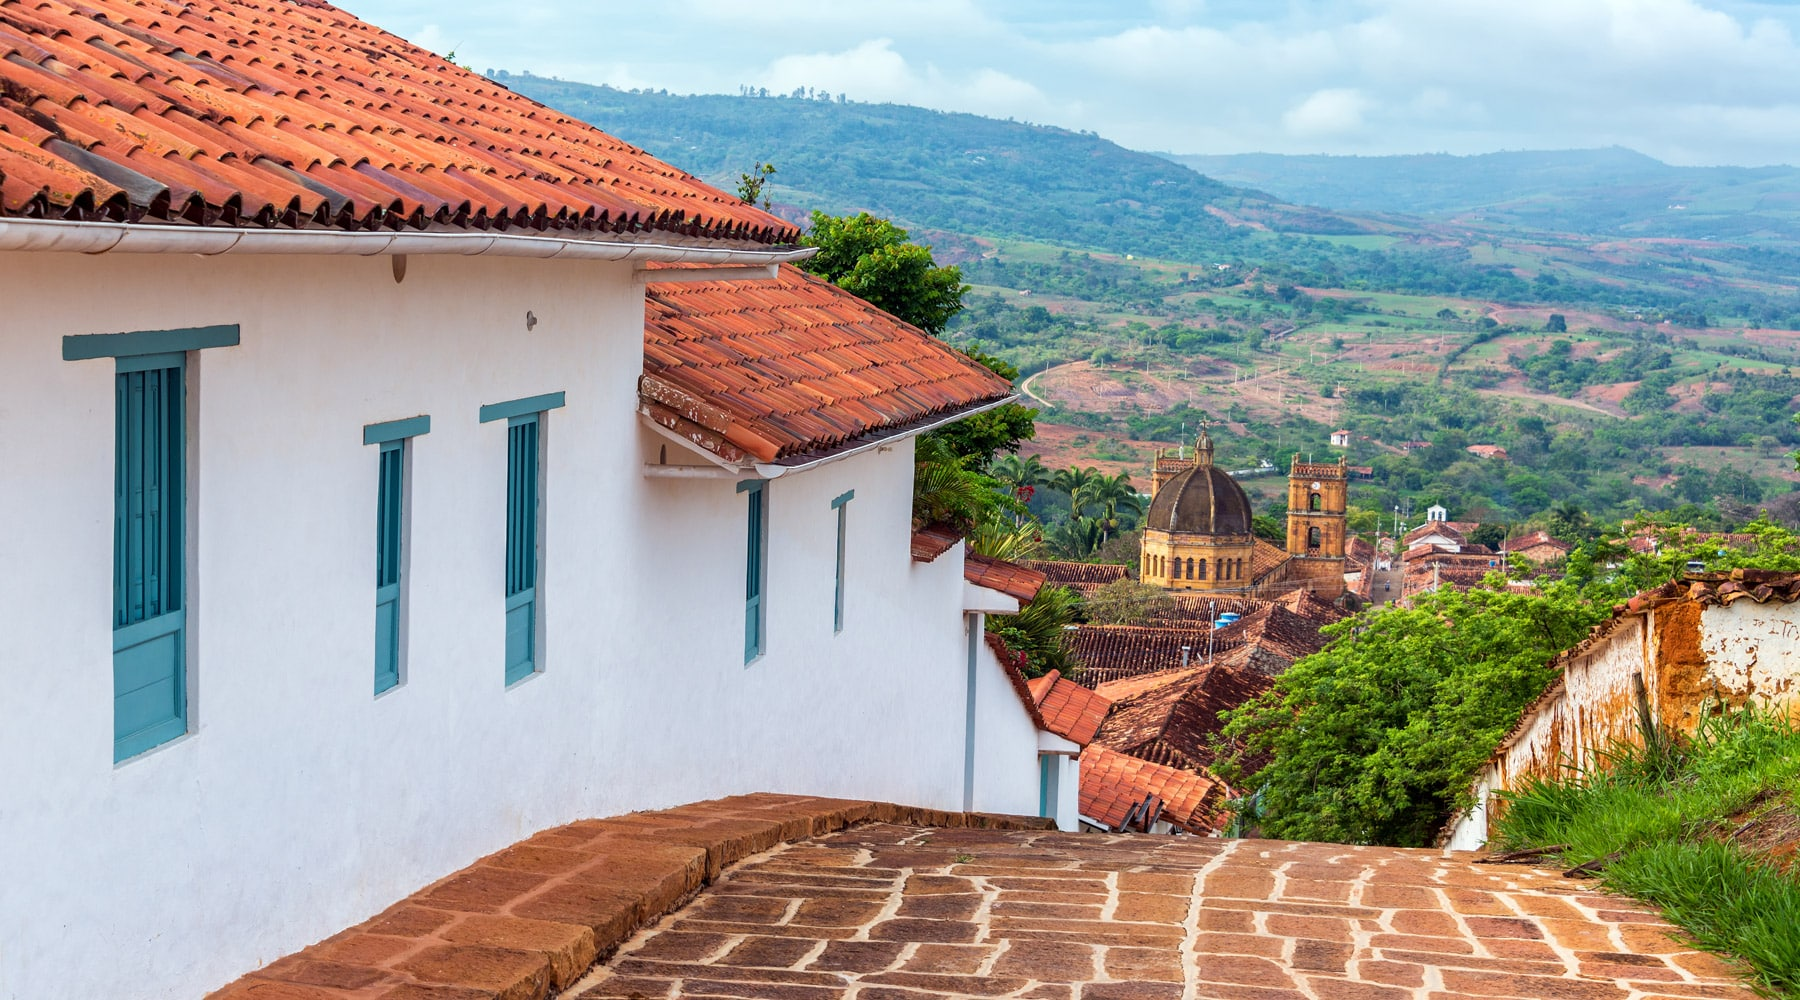 Barichara – The Prettiest Town in Colombia